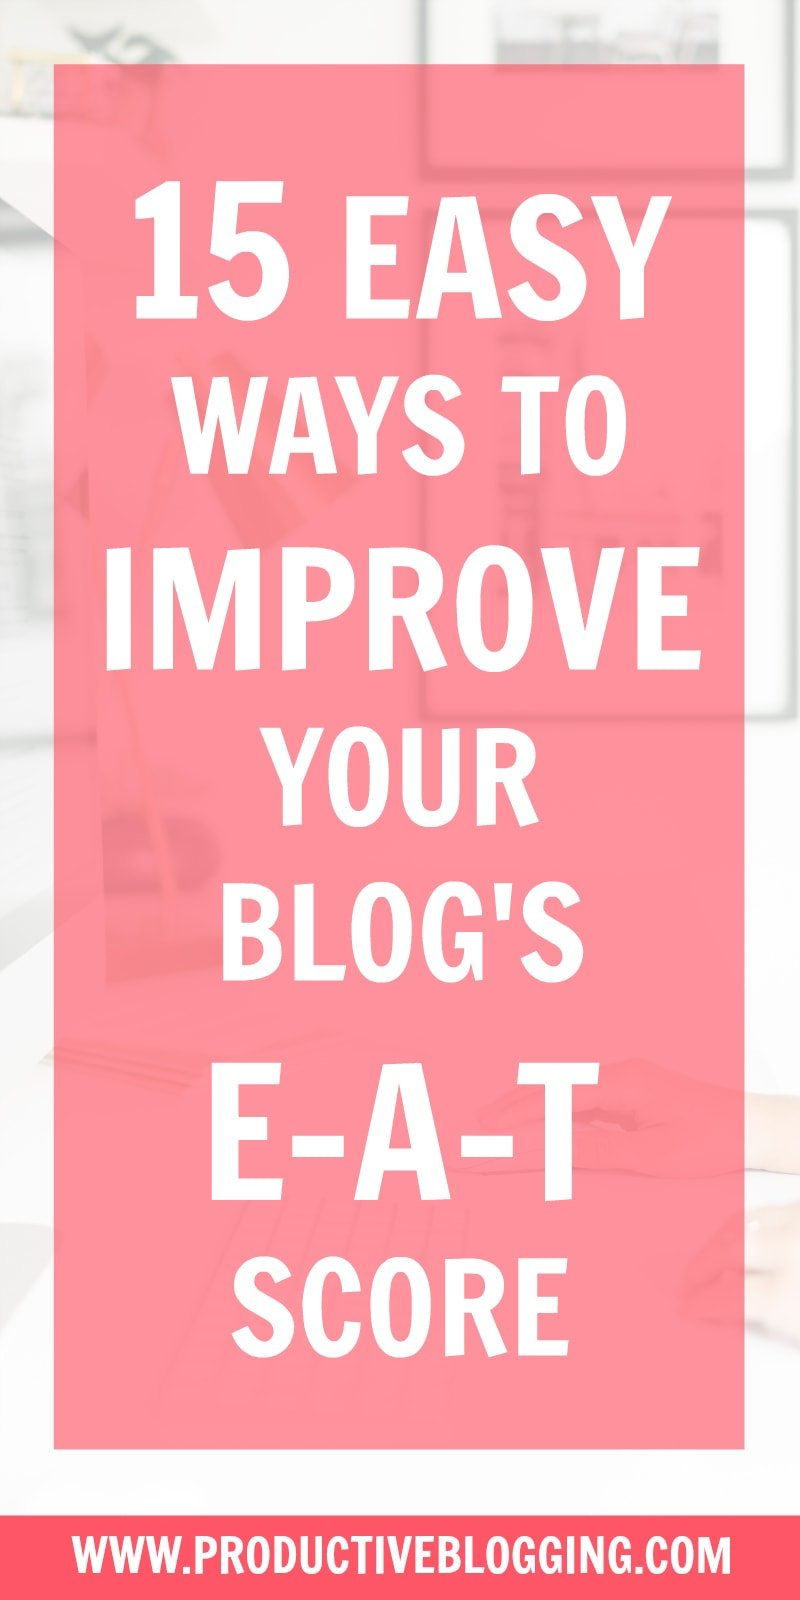 If you want to rank on Google, you need to pay attention to your blog's expertise, authoritativeness and trustworthiness (E-A-T). Here are 16 easy ways to improve your blog's E-A-T score. #EAT #GoogleEAT #EATscore #improveEAT #SEOforbloggers #SEOforbeginners #beginnersSEO #SEO #SEOtips #SEOhacks #searchengineoptimisation #searchengineoptimization #growyourblog #bloggrowth #bloggrowthhacks #bloggingtips #blogginghacks #blogging #bloggers #blogsmarter #blogsmarternotharder #productiveblogging